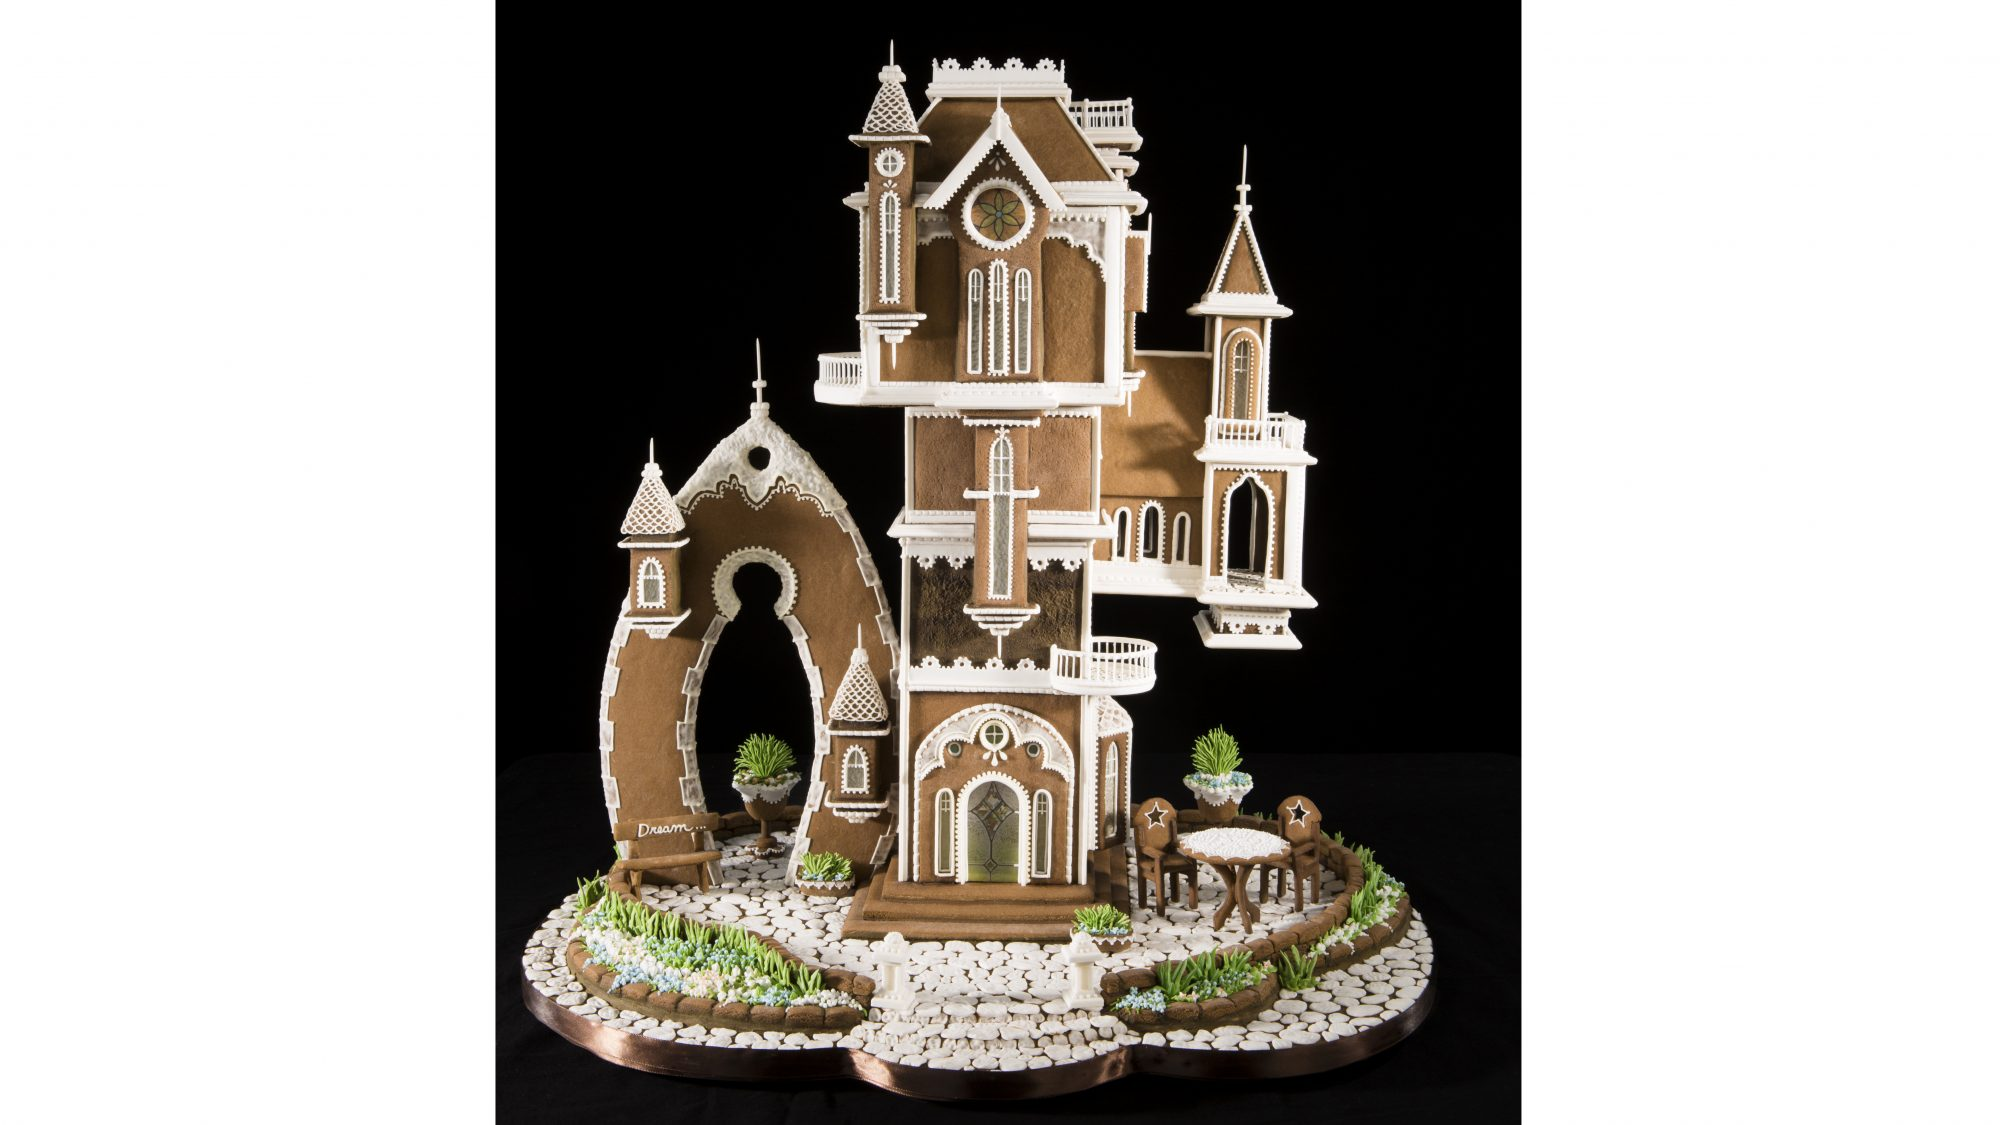 2016 Gingerbread House Competition Grand Prize Winner